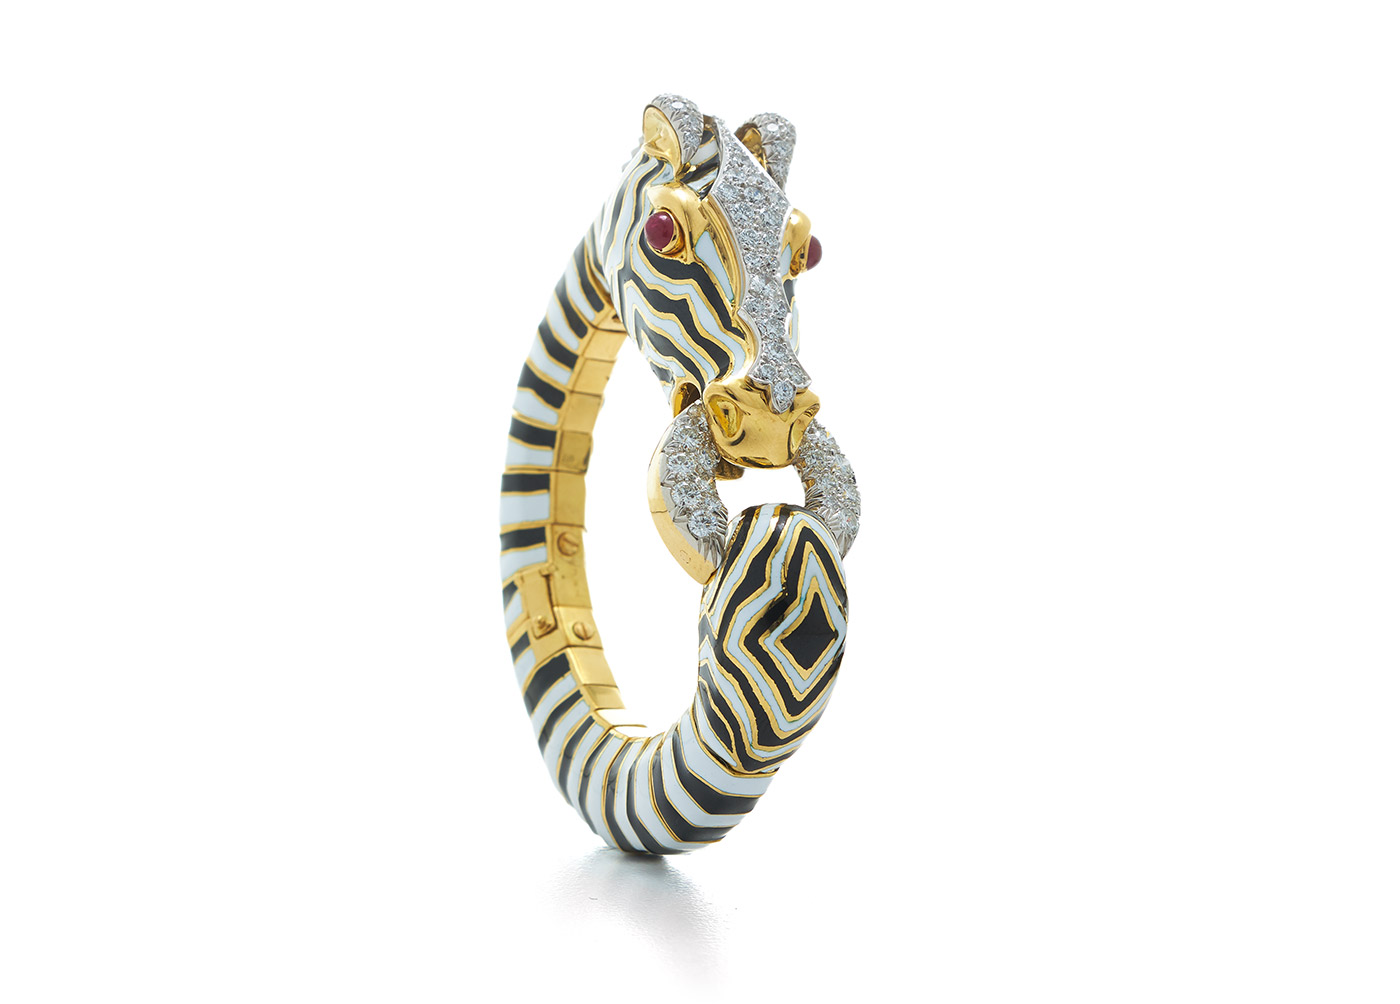 David Webb 'Zebra' bracelet with cabochon rubies, brilliant cut diamonds and enamel in 18k gold and platinum